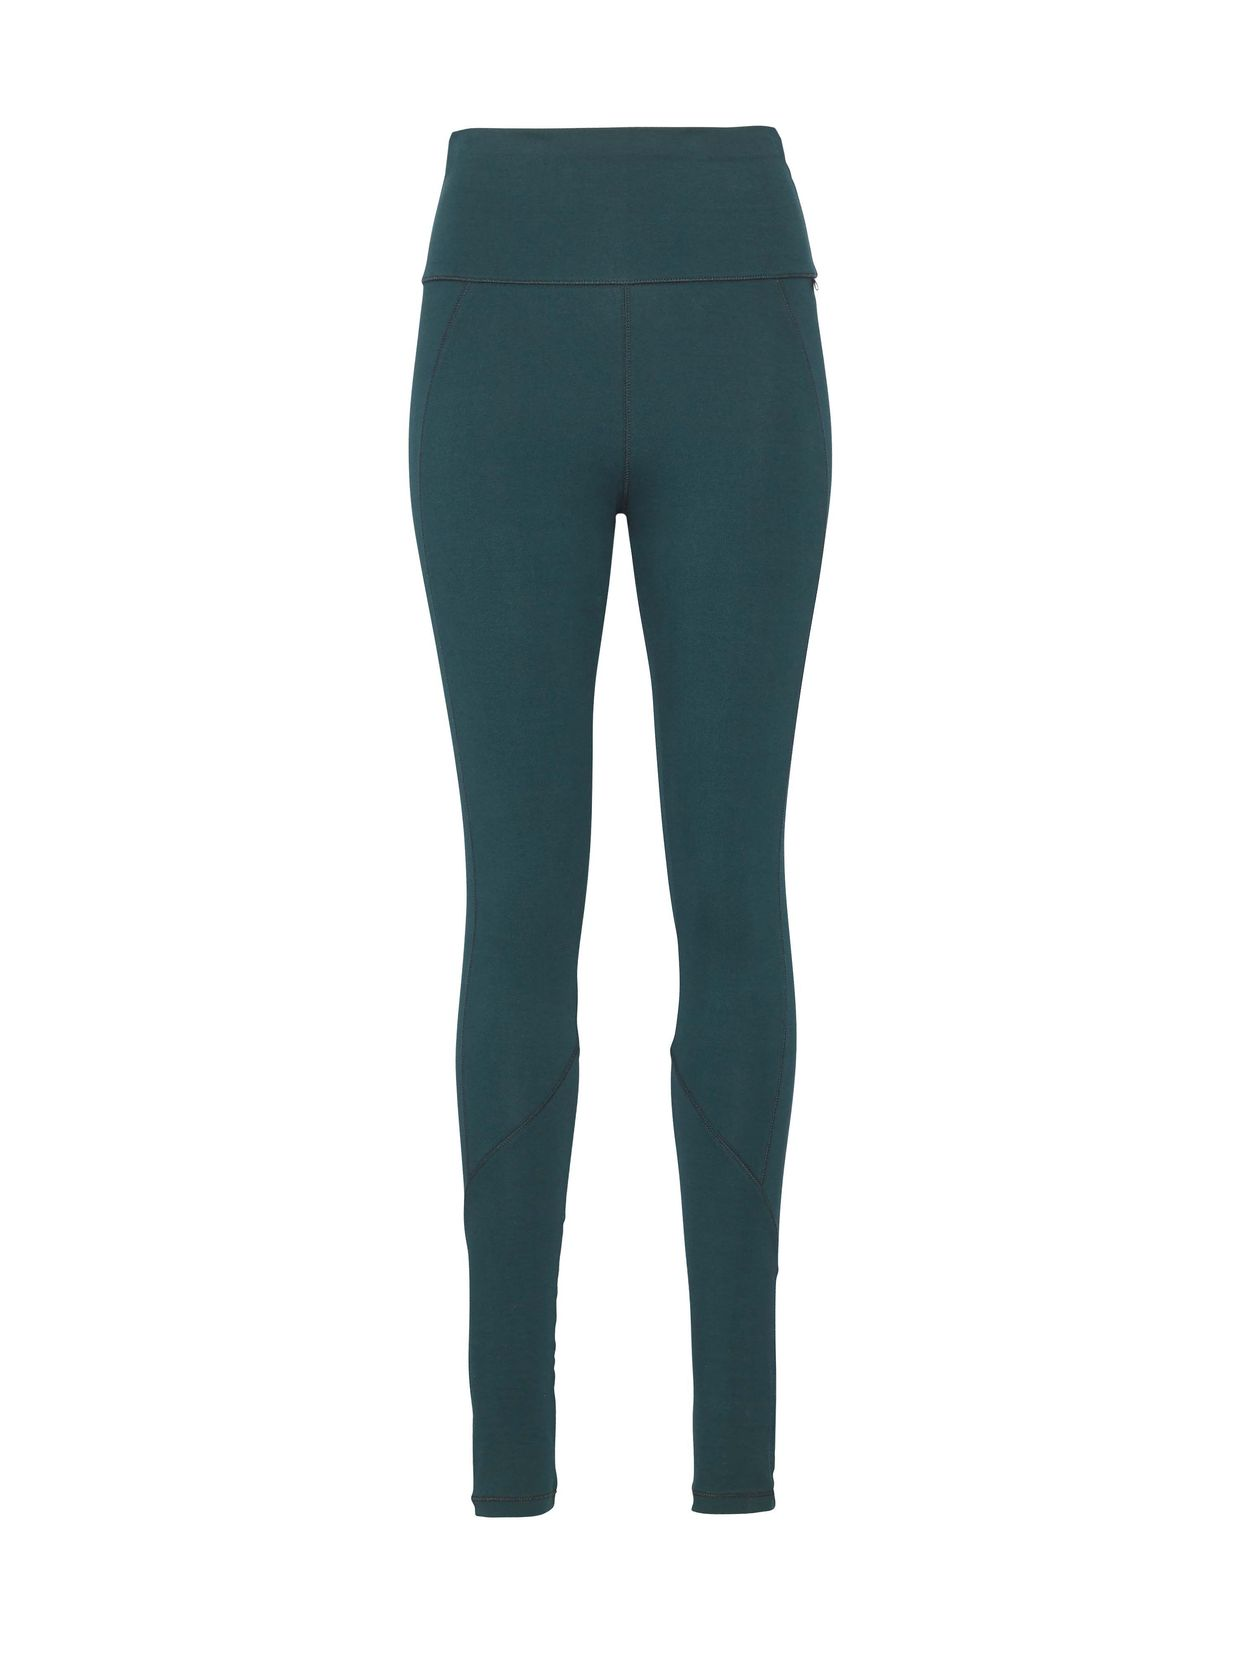 Leggings, Rituals, €39,99